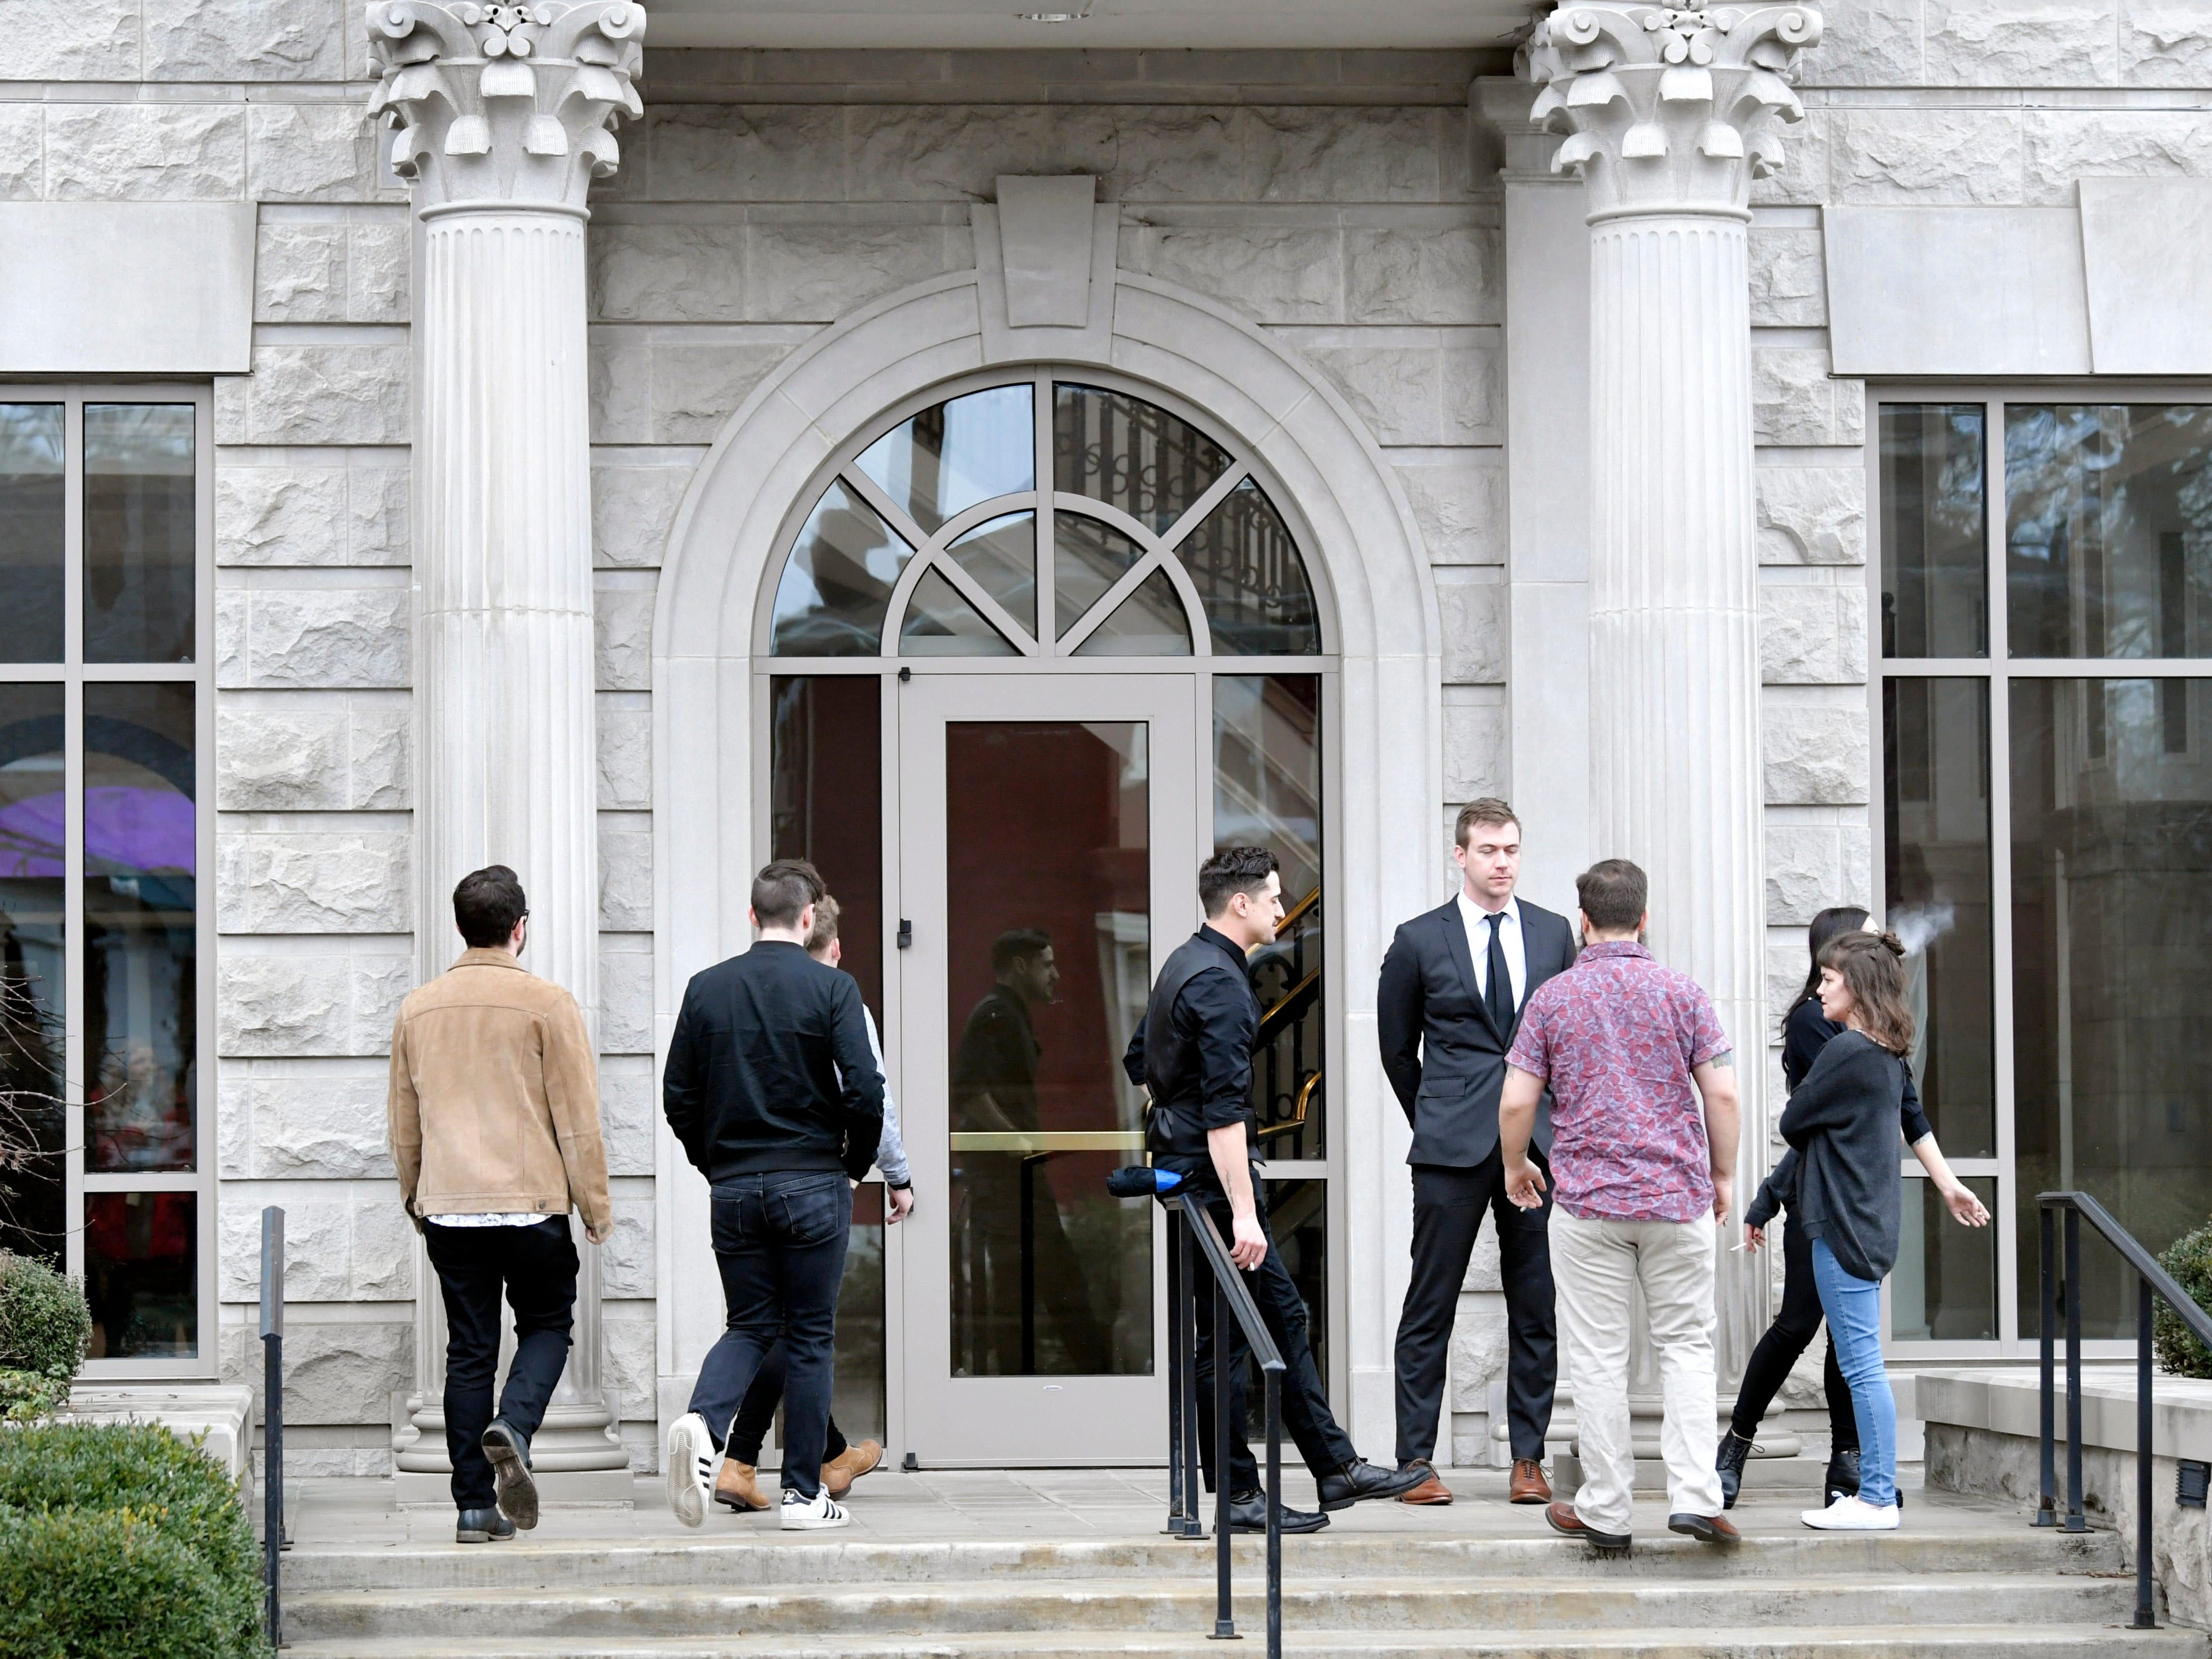 People walk in a side door of the Janet Ayers Academic Center, home to the Belmont University Chapel, where the memorial service for Kyle Yorlets was held Monday, Feb. 11, 2019. Police have charged five juveniles in the case. The memorial service followed a press conference by his fellow Carverton band members.